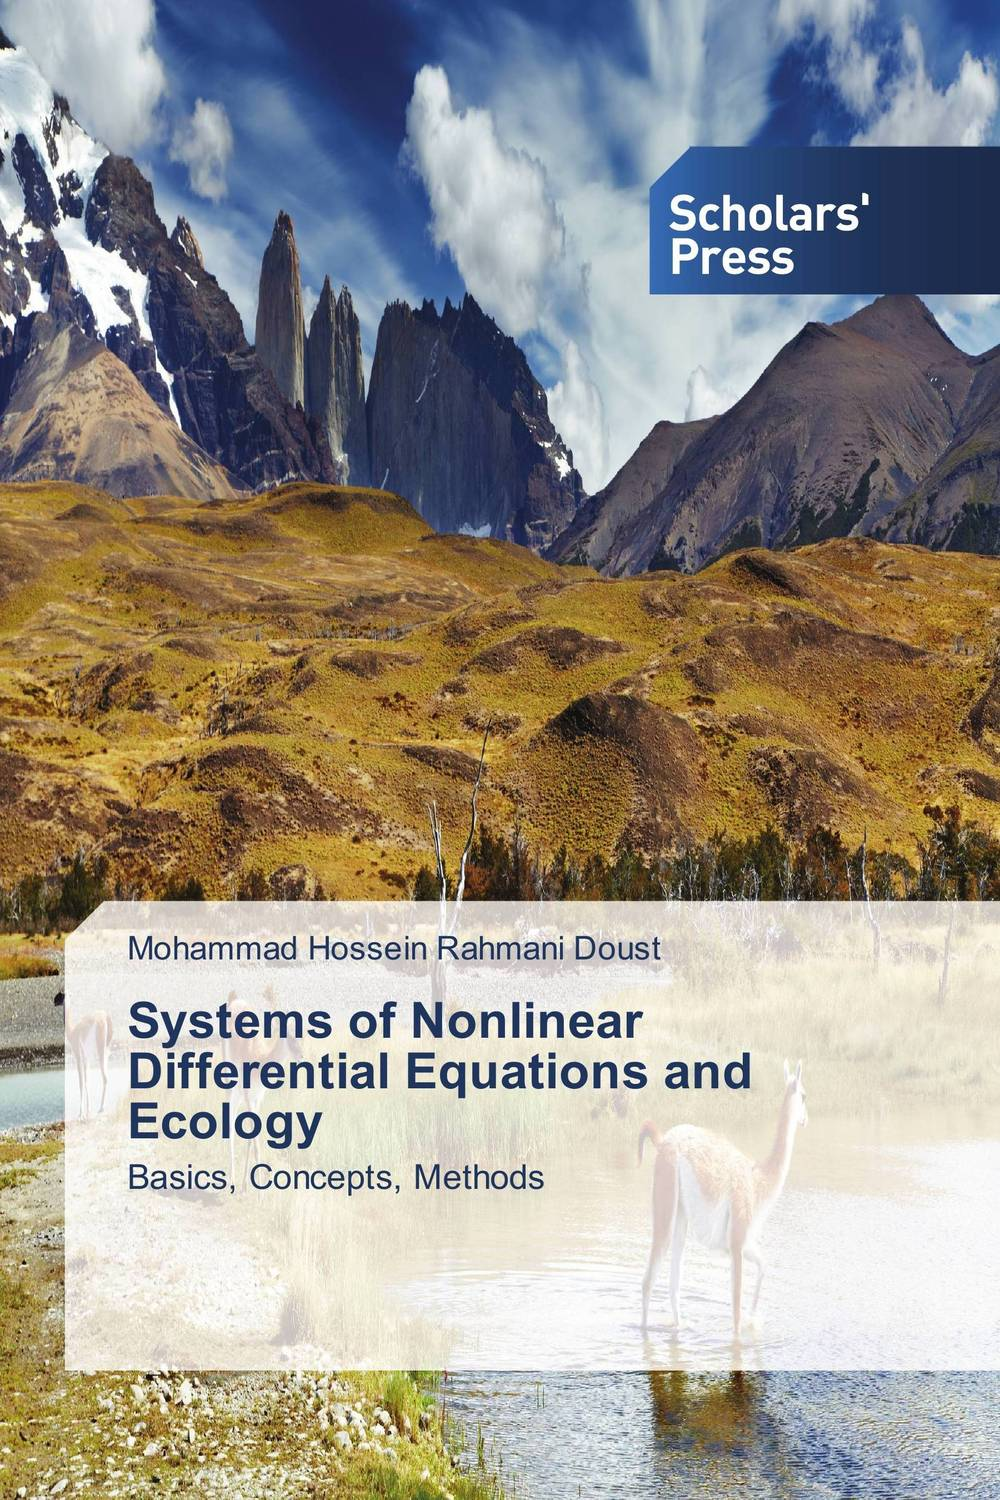 Systems of Nonlinear Differential Equations and Ecology collocation methods for volterra integral and related functional differential equations